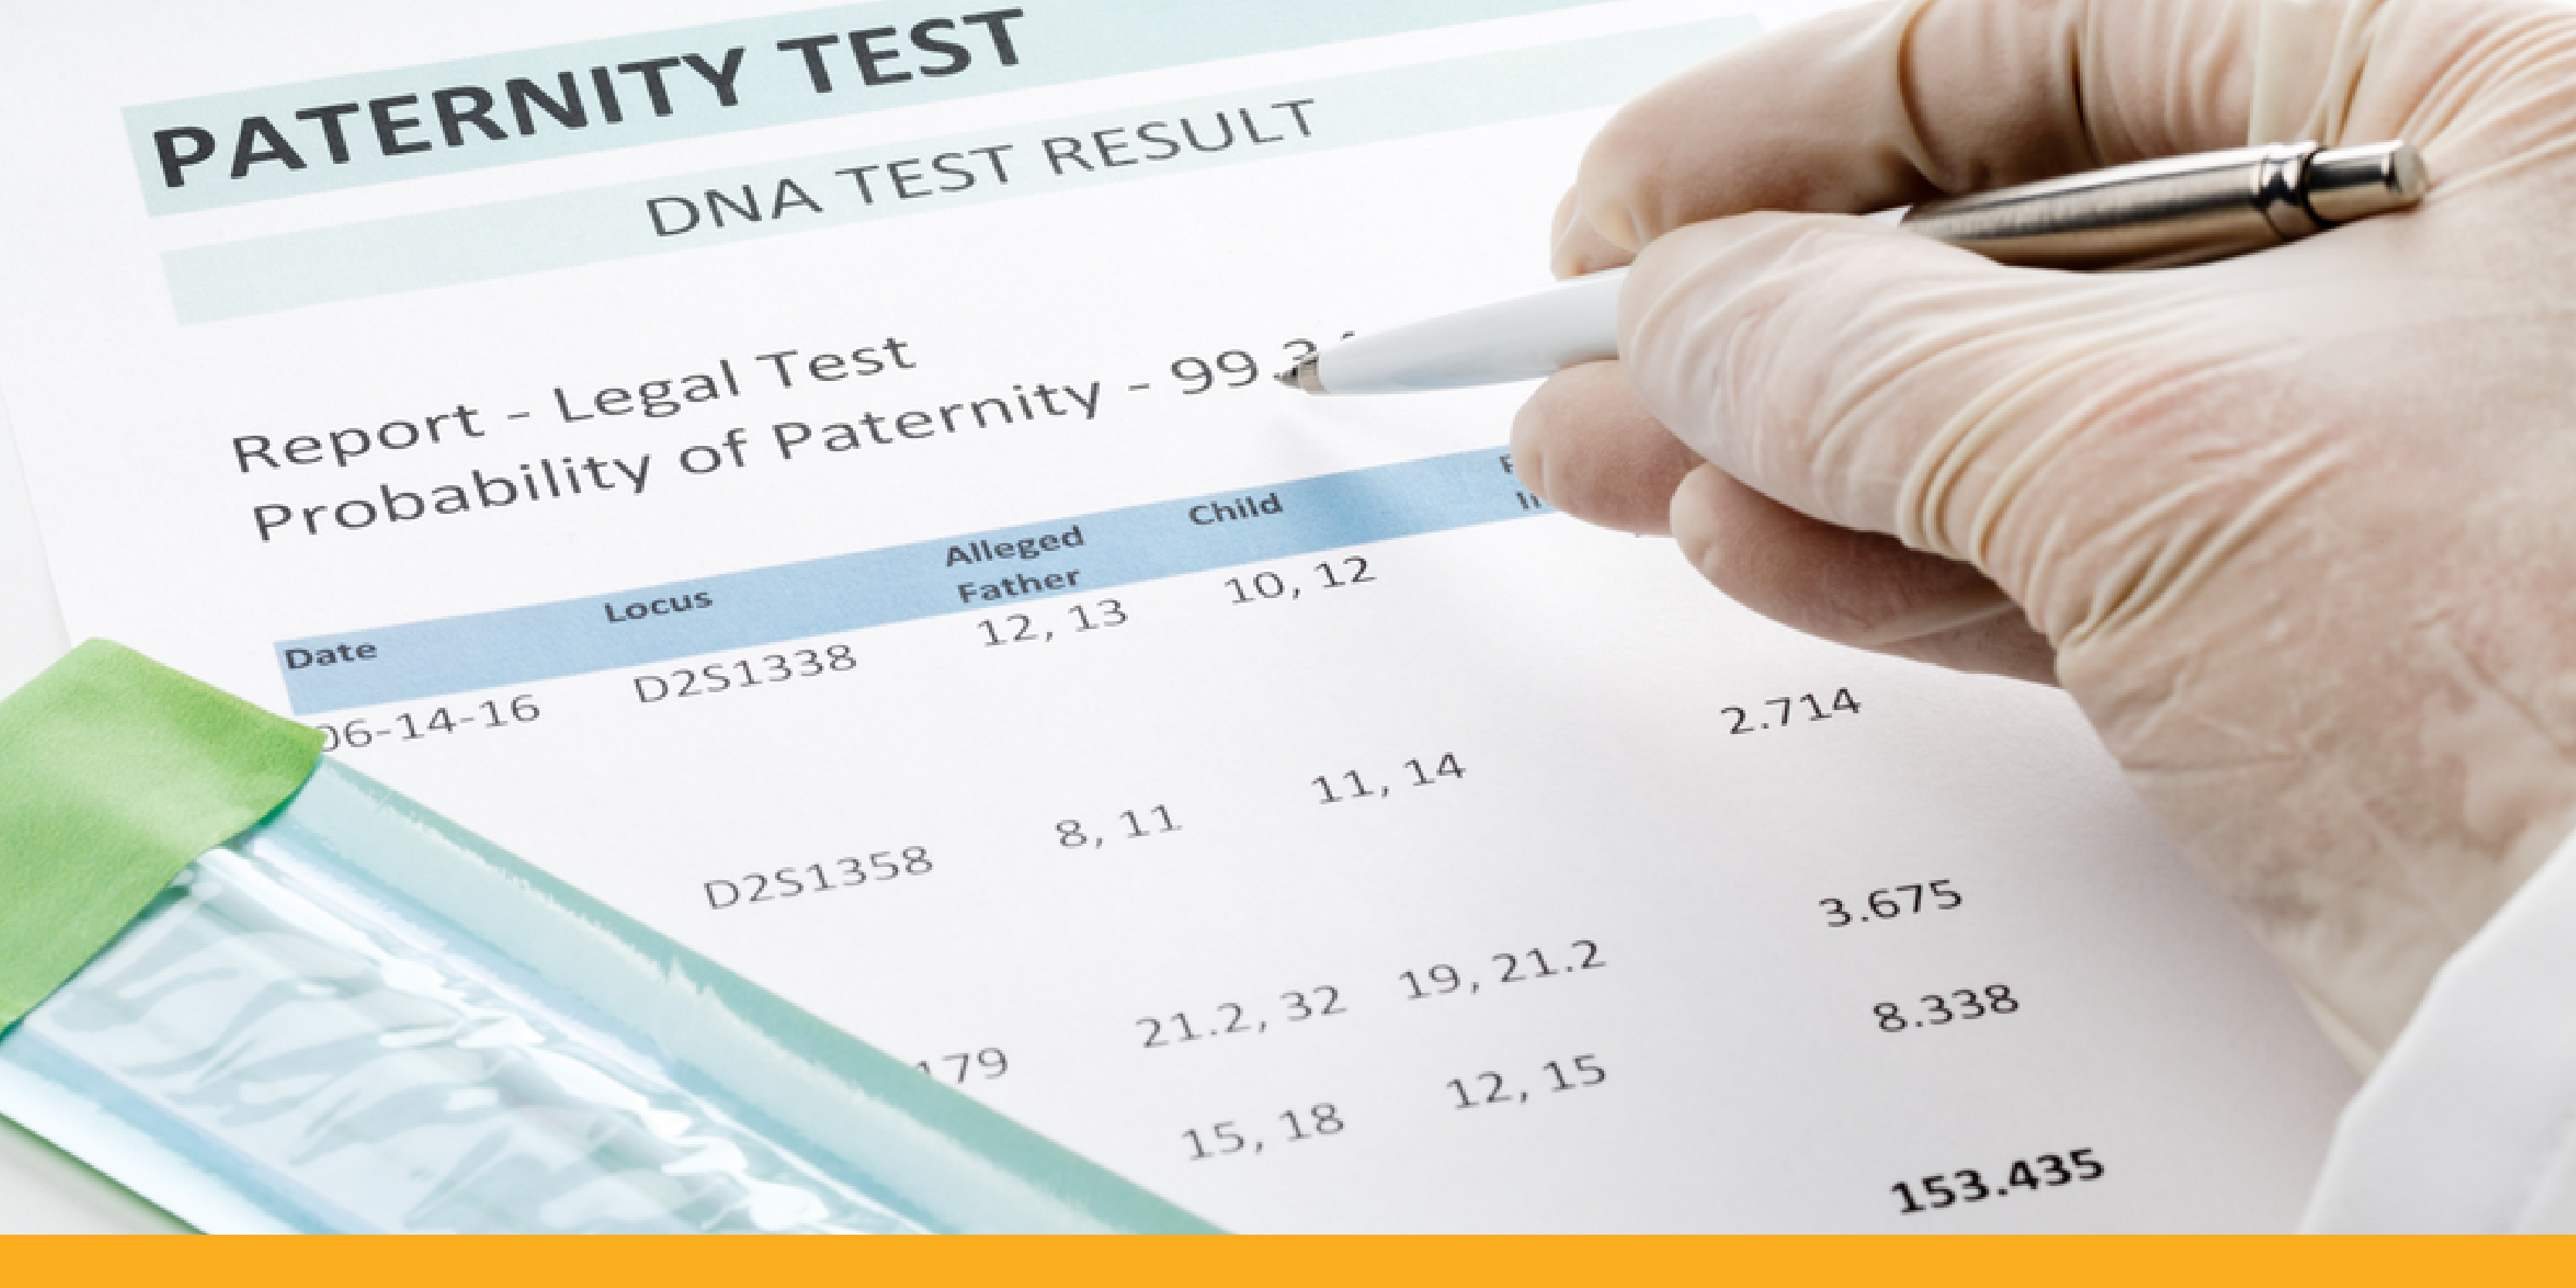 Example of paternity test results